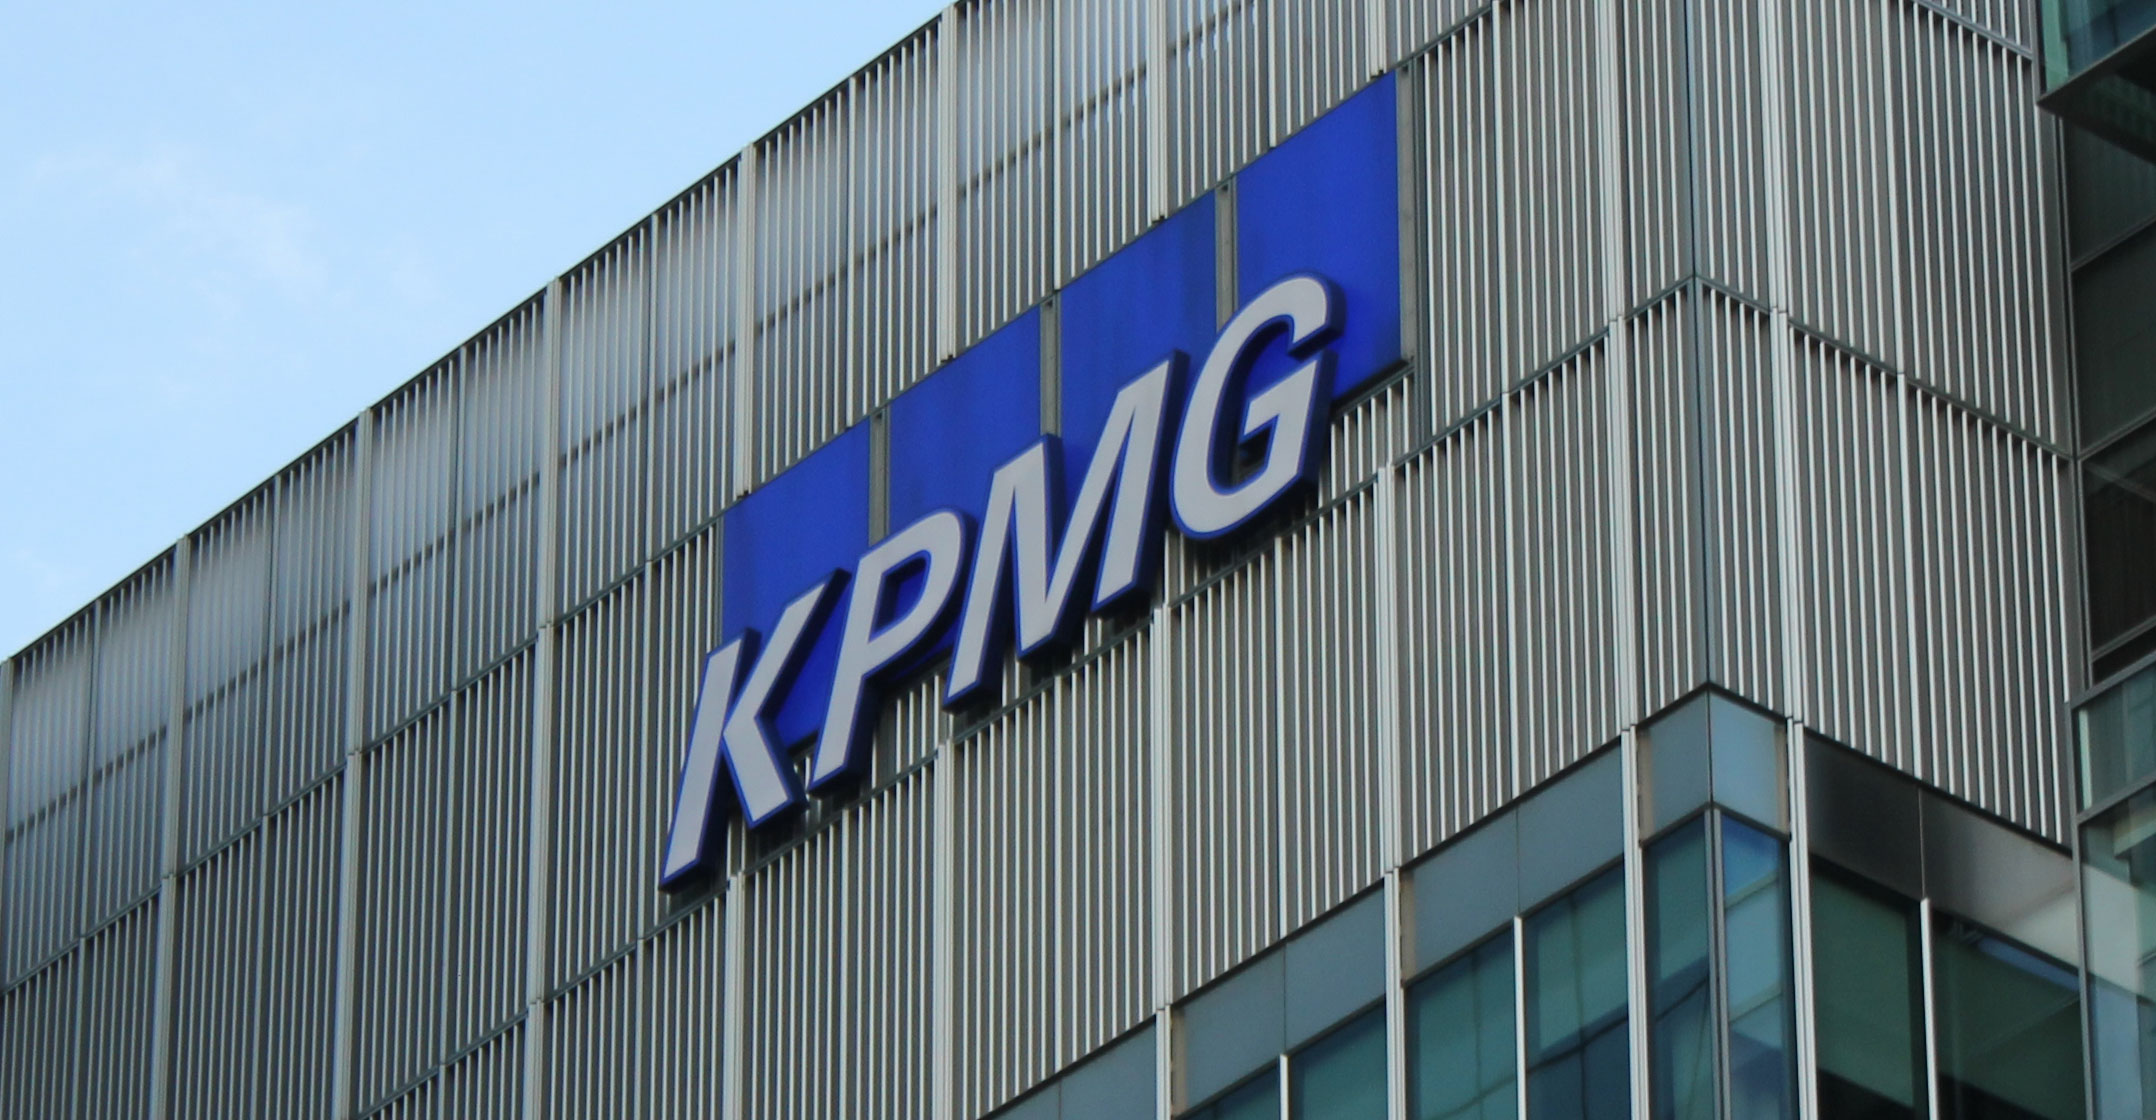 New KPMG boss set on salvaging firm's integrity after Gupta furore